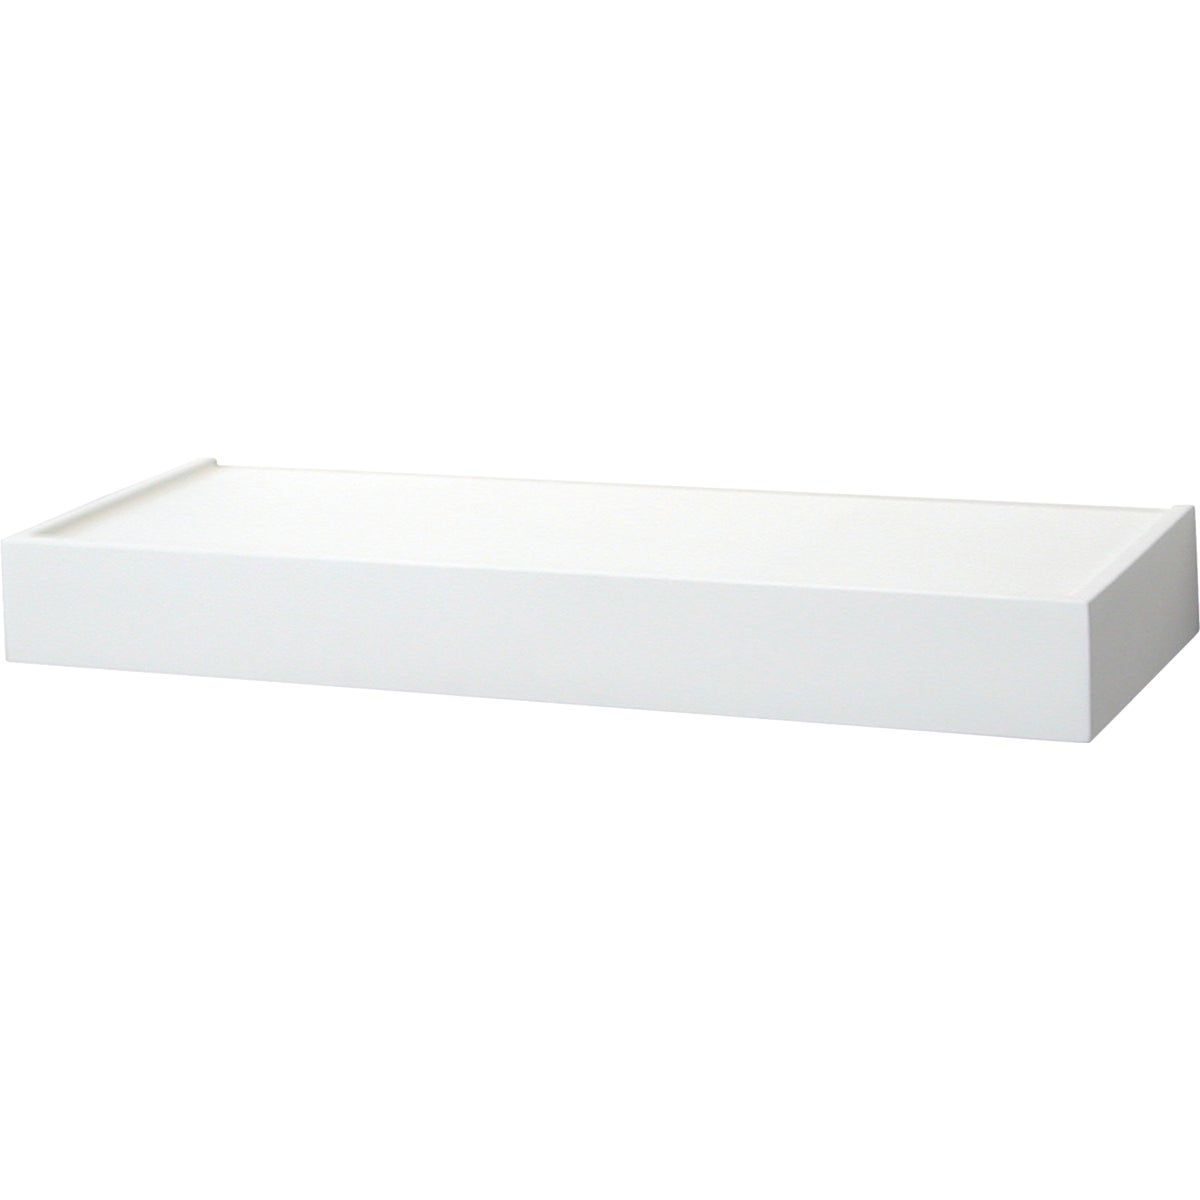 "24"" WHITE FLOATING SHELF"